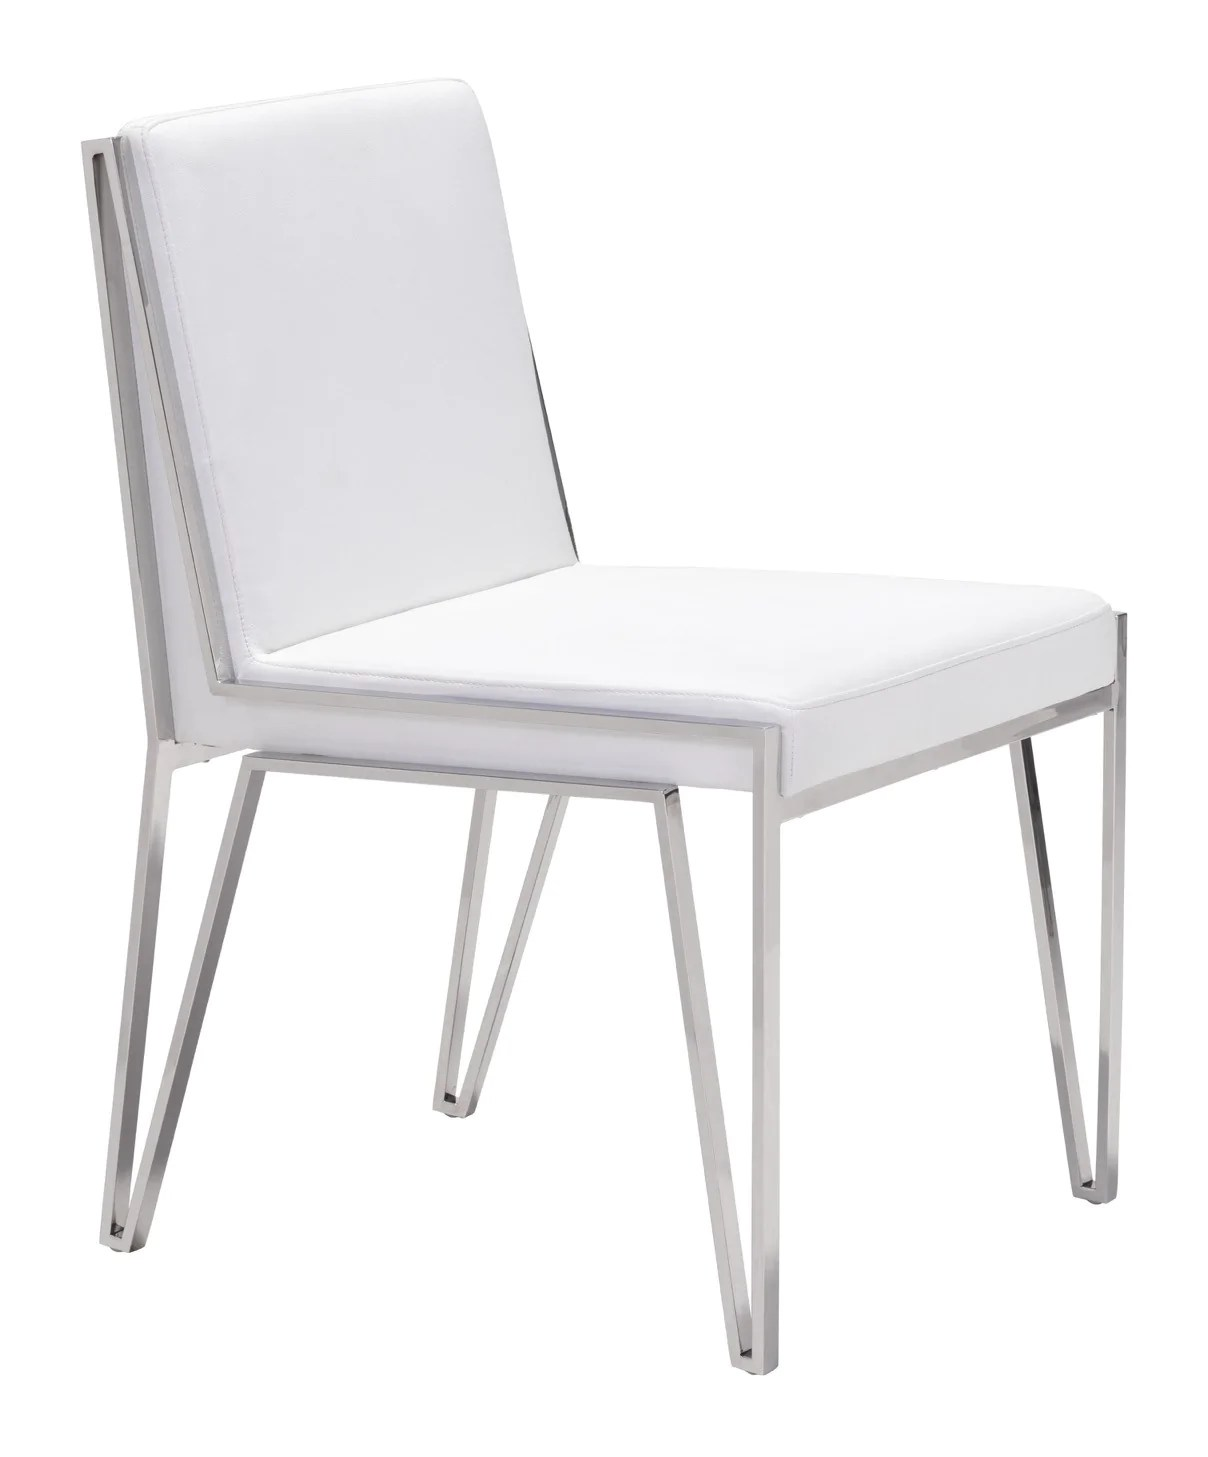 dining chairs with stainless steel legs sling chair fabric by the yard kylo in white leatherette open set of 2